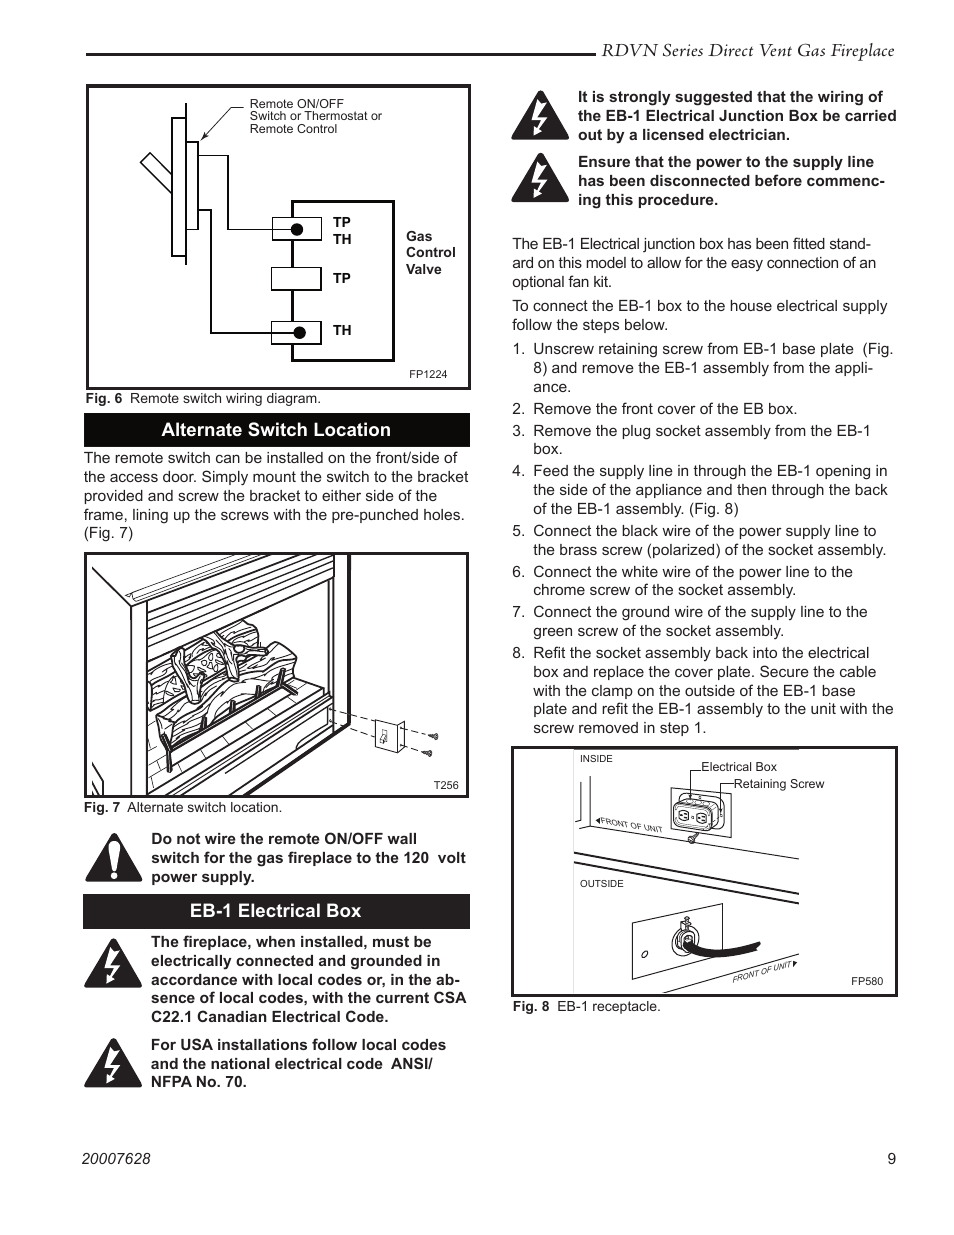 Rdvn Series Direct Vent Gas Fireplace Eb 1 Electrical Box 110 Volt Receptacle Wiring Diagram Alternate Switch Location Temco Tool 36rdvn User Manual Page 9 48